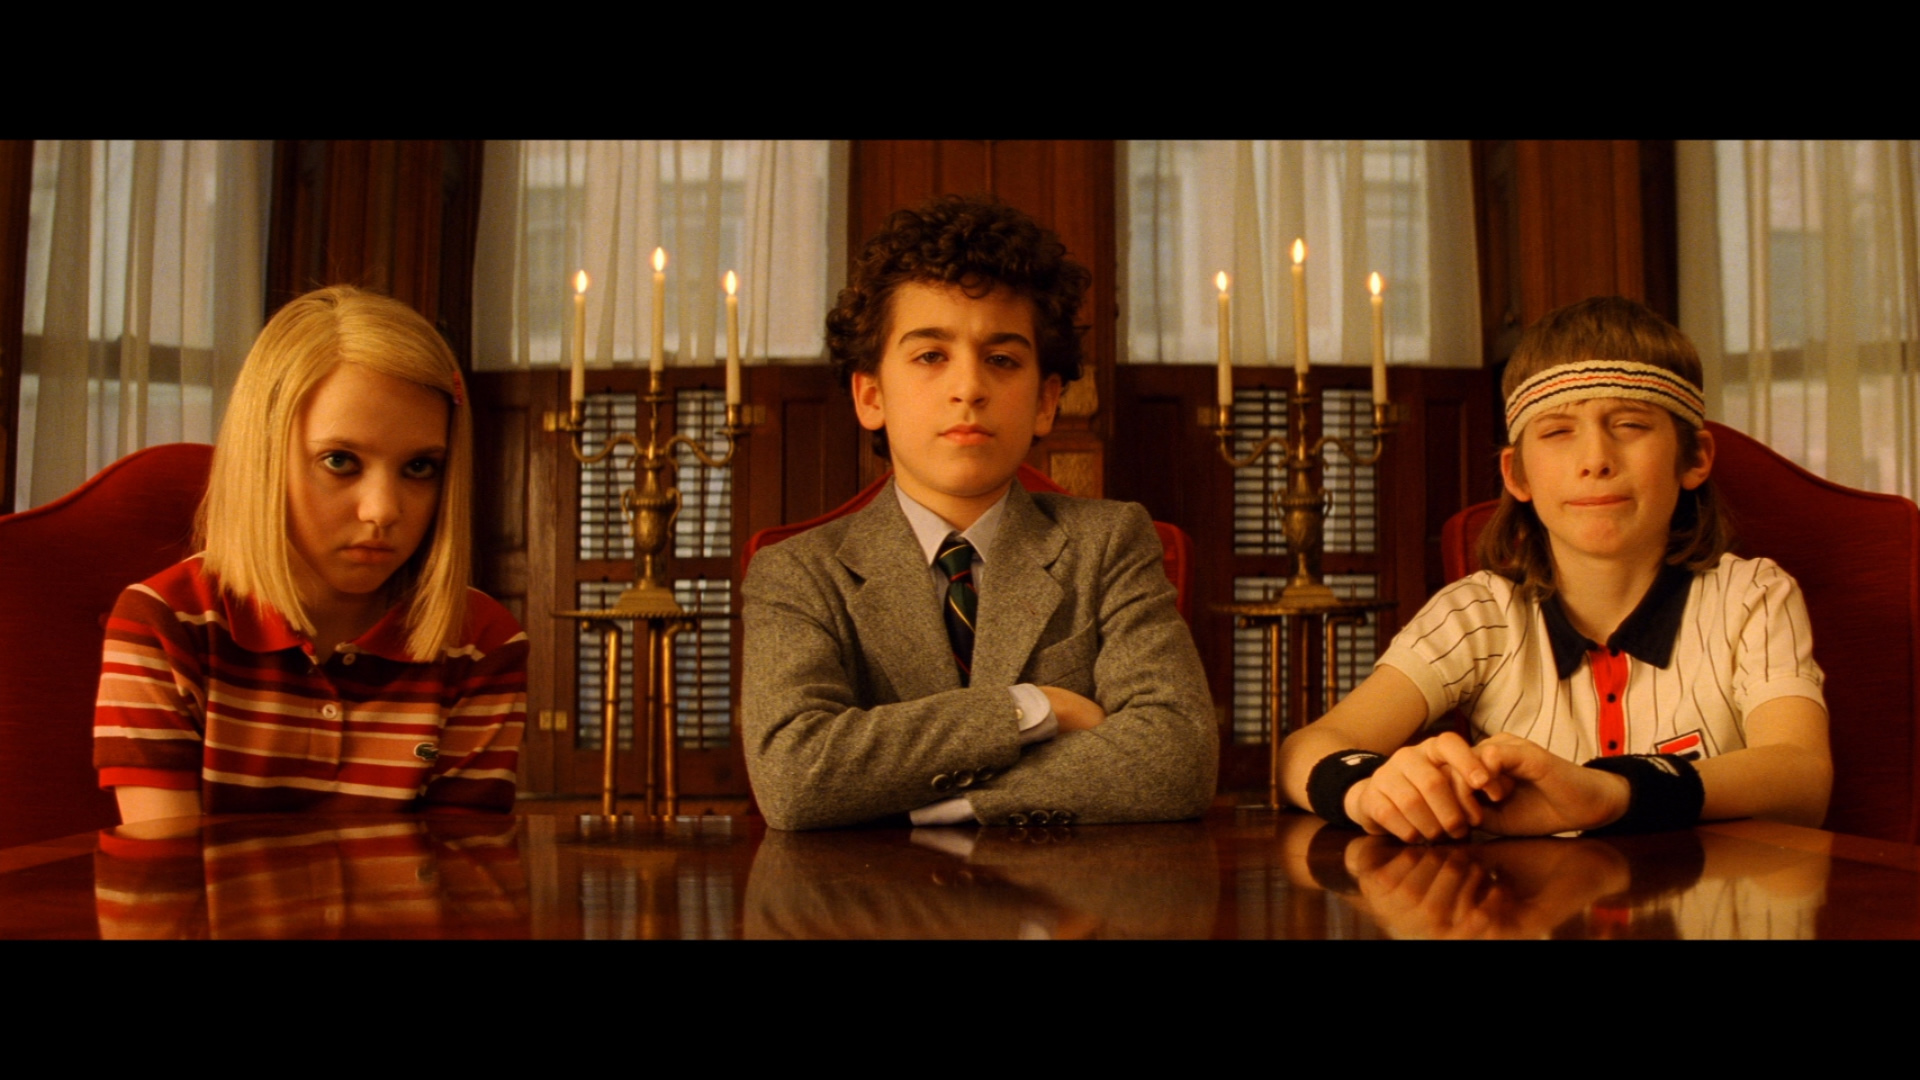 https://i1.wp.com/www.dvdbeaver.com/film4/blu-ray_reviews57/royal%20_tenebaums_blu-ray_/large/large_royal_tenebaums_blu-ray_x01.jpg